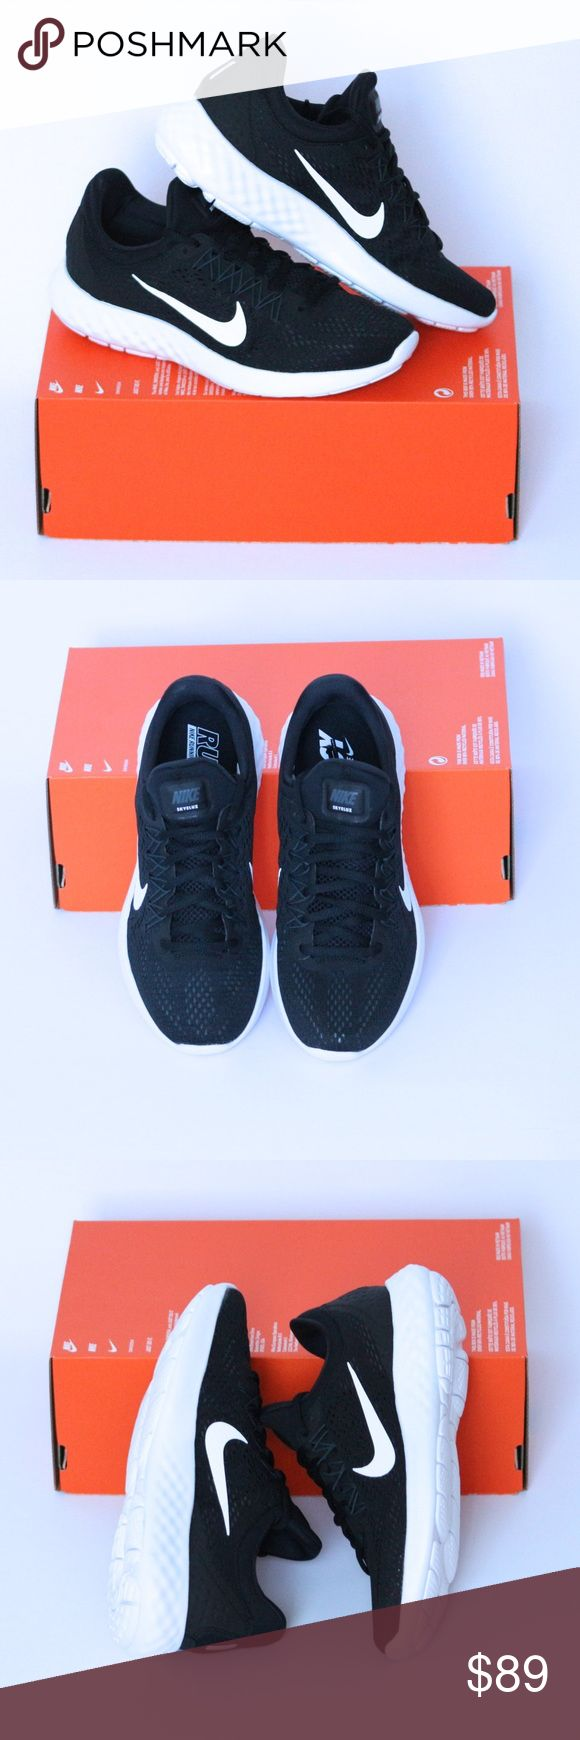 Nike Shoes 👟 Brand new, never used Nike Lunar shoes Nike Shoes Athletic Shoes